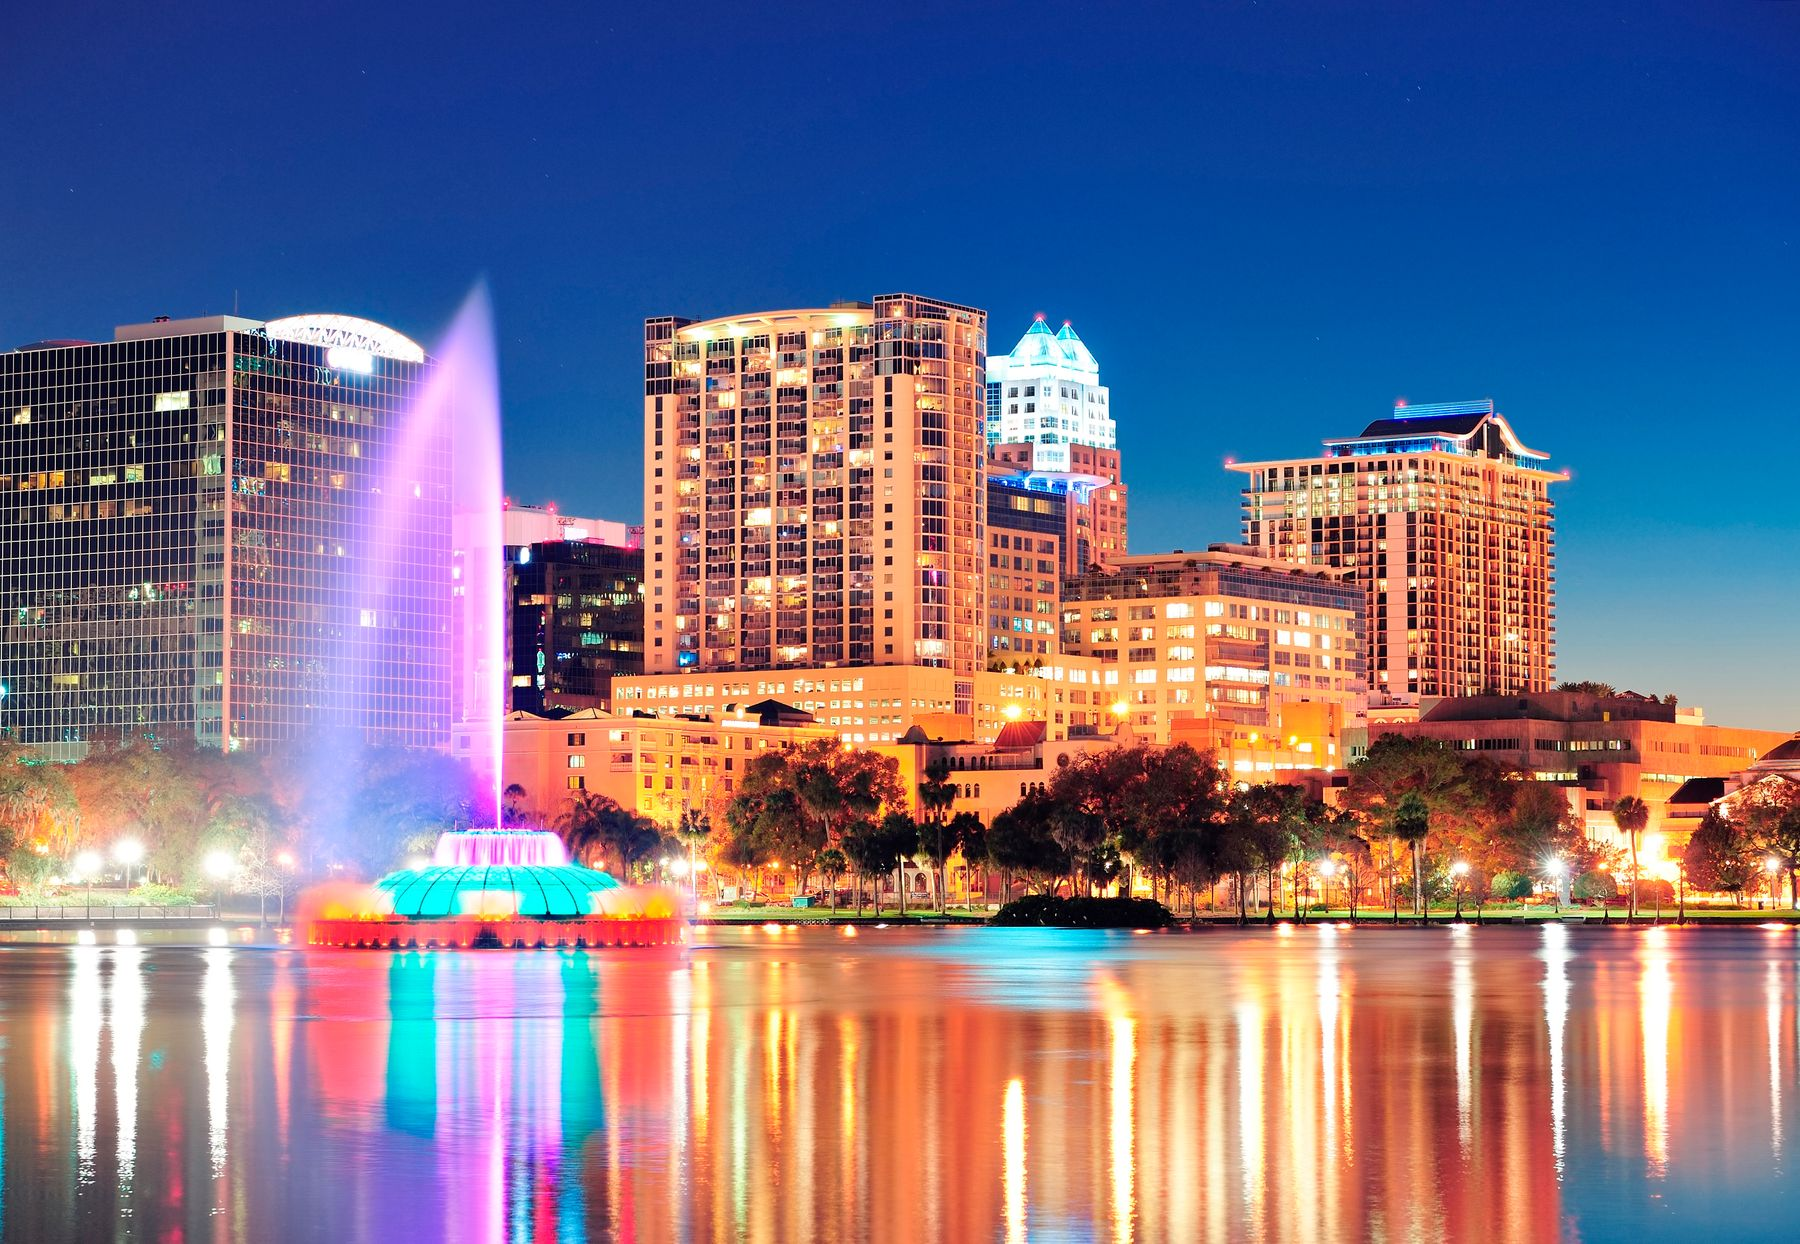 Orlando Florida is home to many theme parks, perfect if you want to plan a trip a year in advance